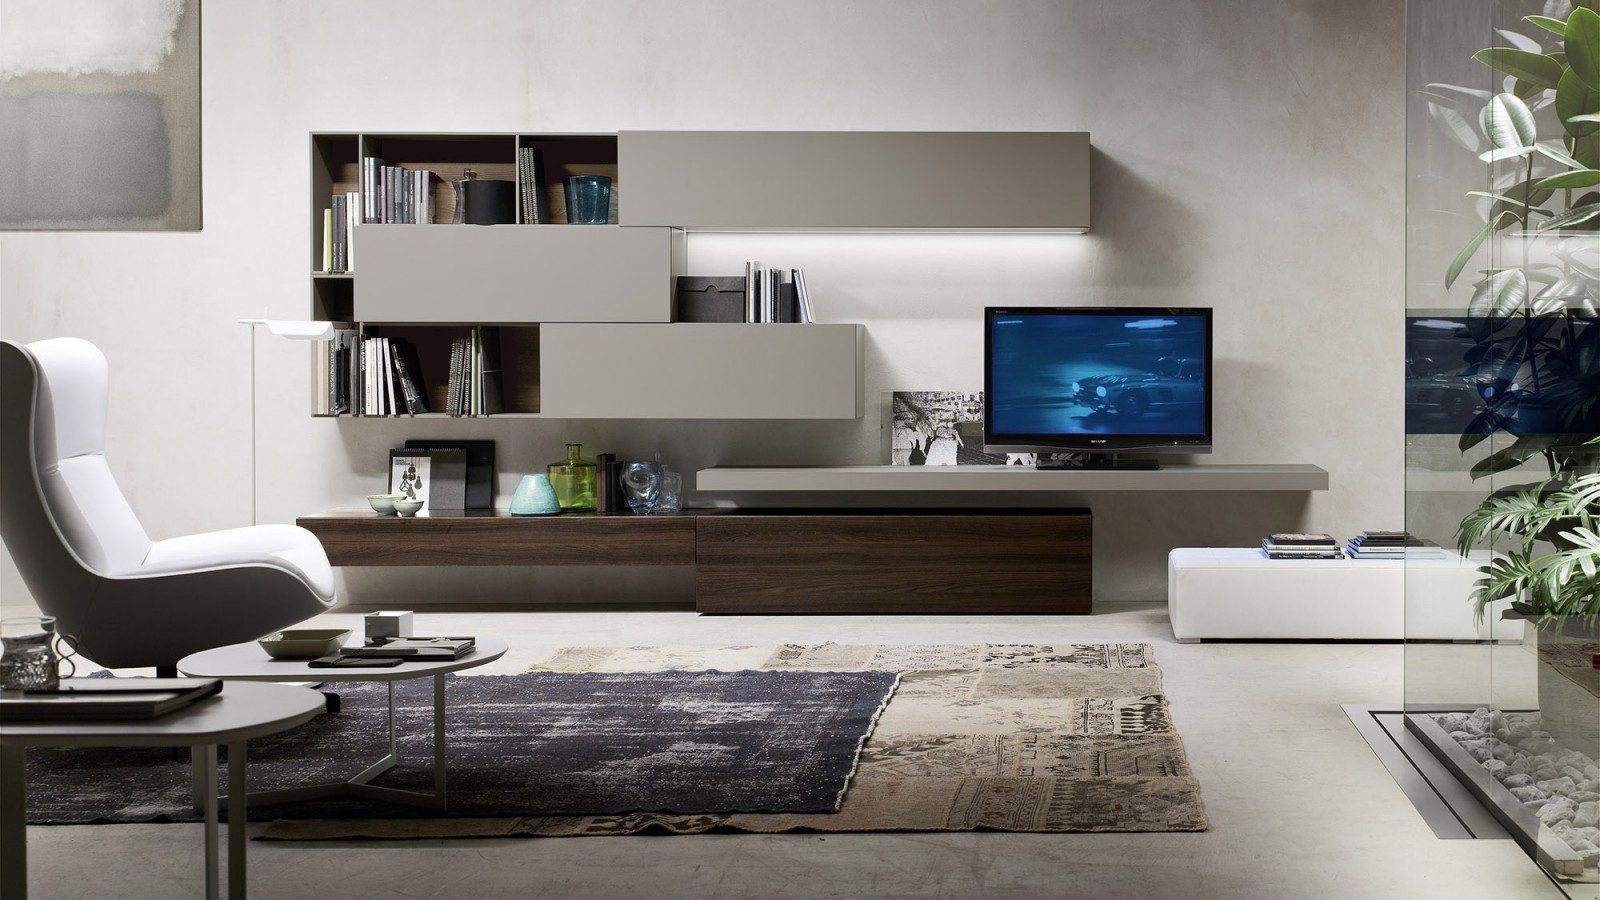 Orme homes for Salotto arredamento